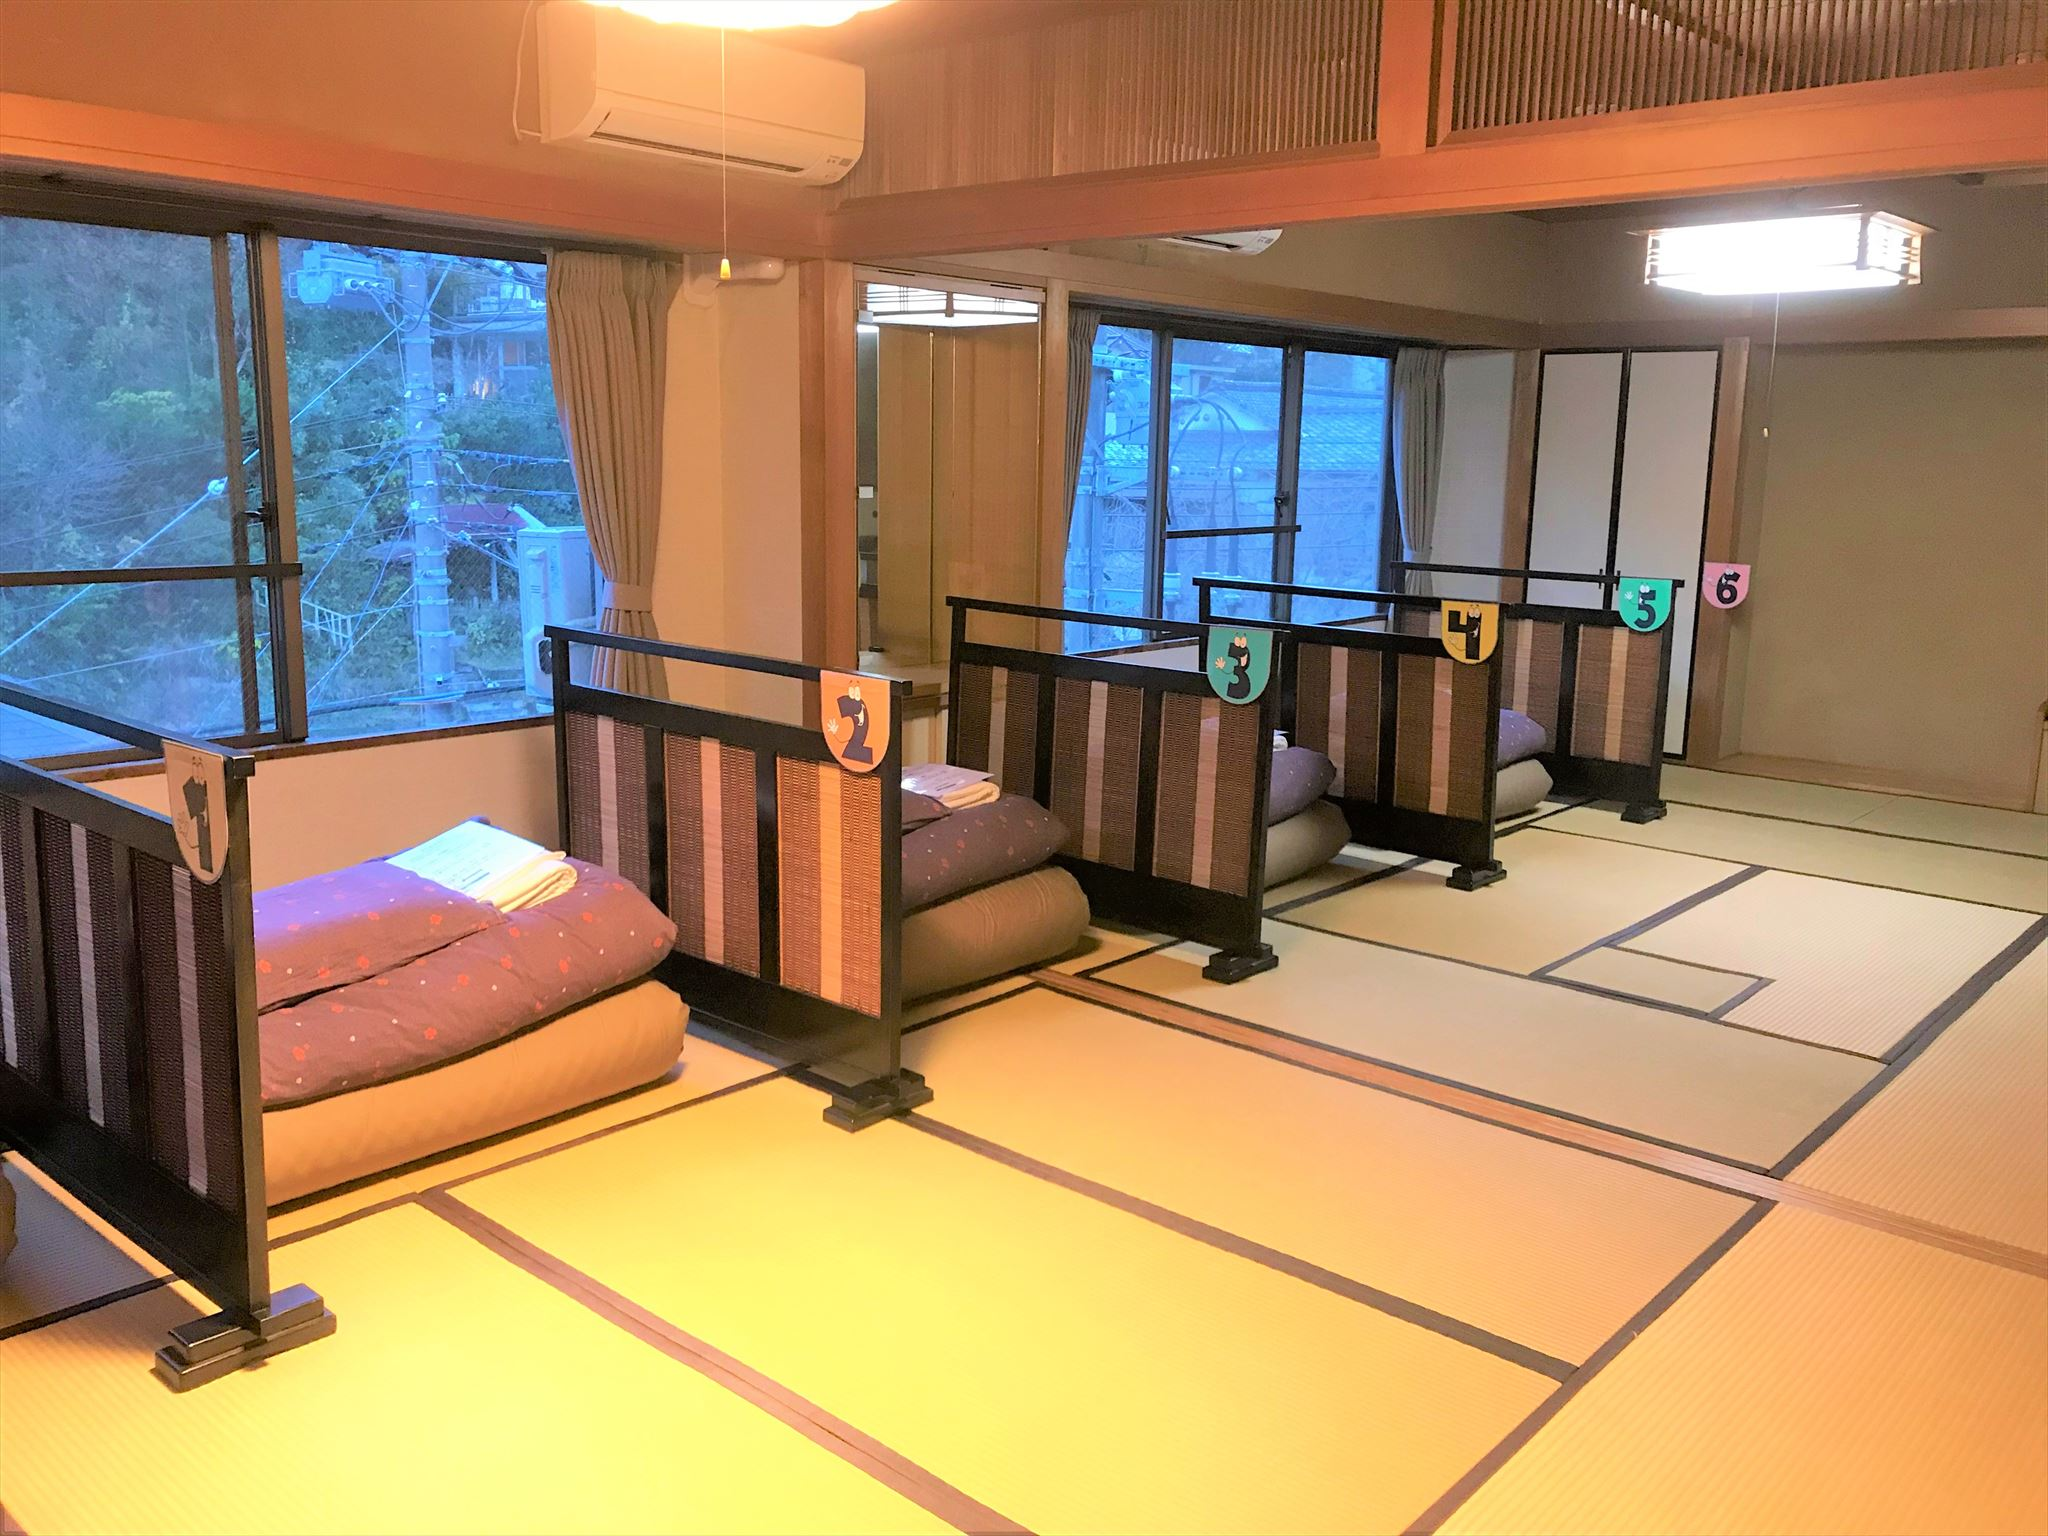 Rooms Amp Rates For Onsen Hostel K S House Hakone |k S House